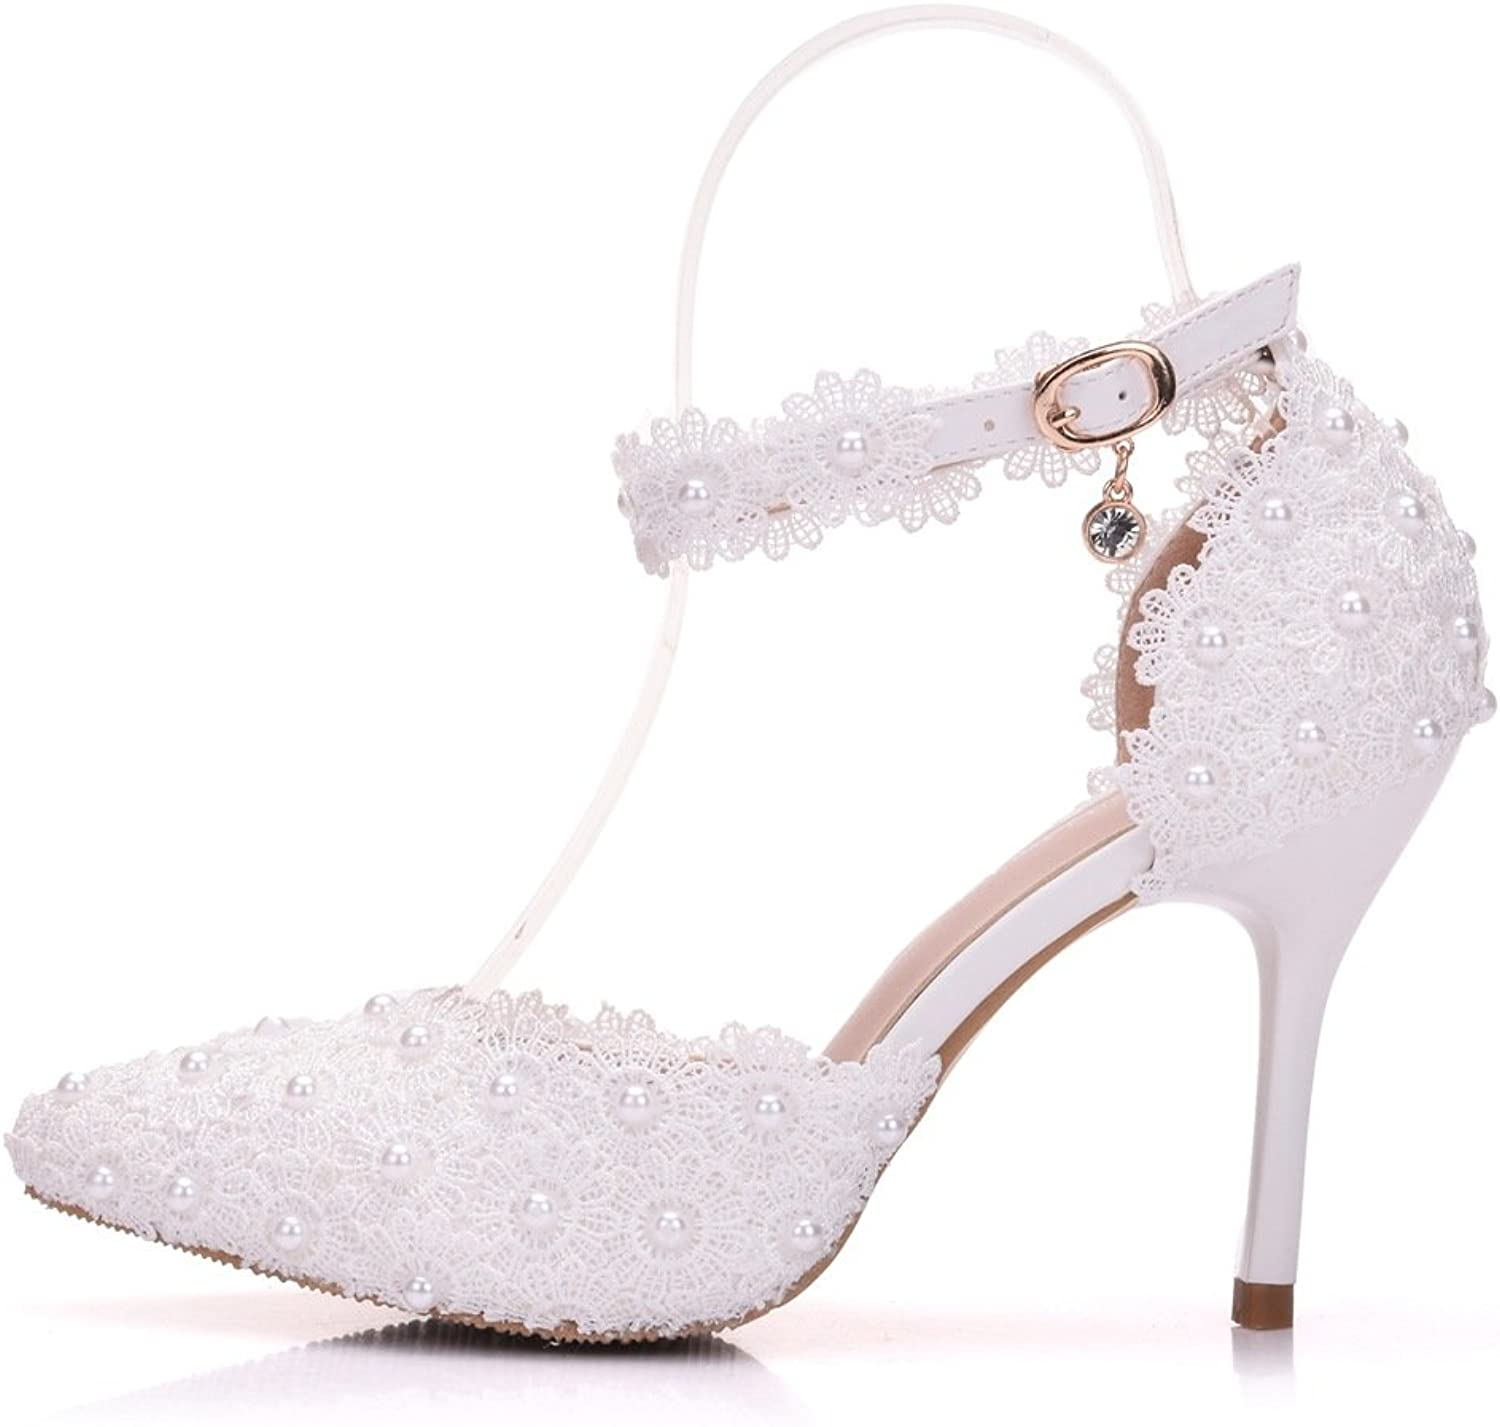 MIKA HOM Dress Stilettos Pointy Bow Heeled Sandals Lady Multi colors Prom Wedding Party Club Pumps shoes Prime